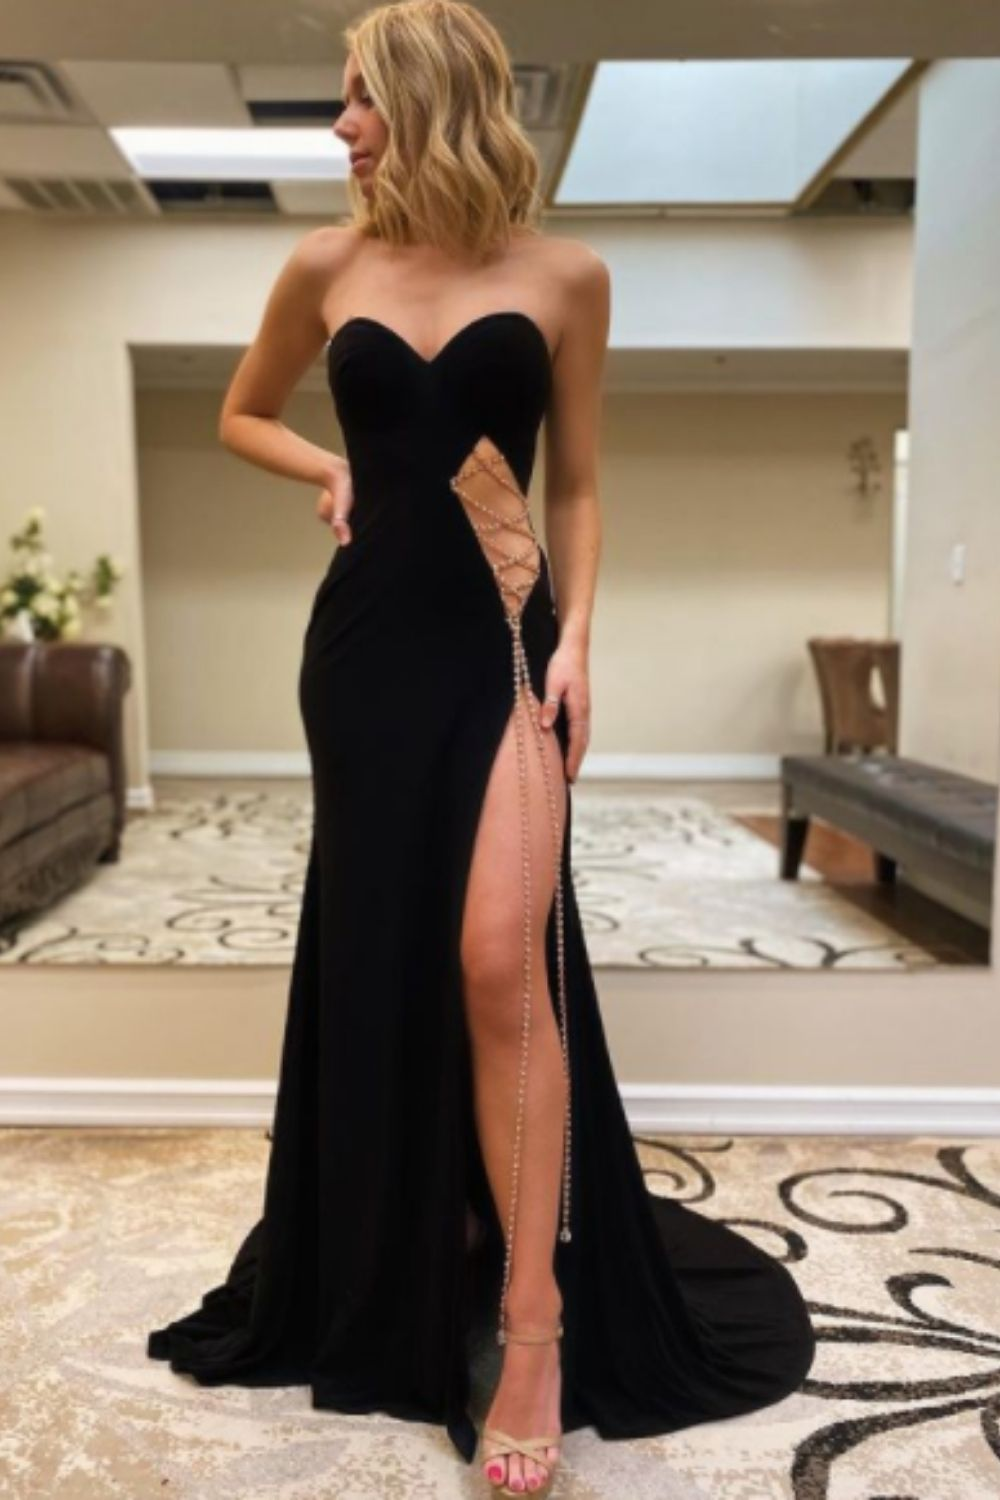 Tips on finding the perfect homecoming dress 2021